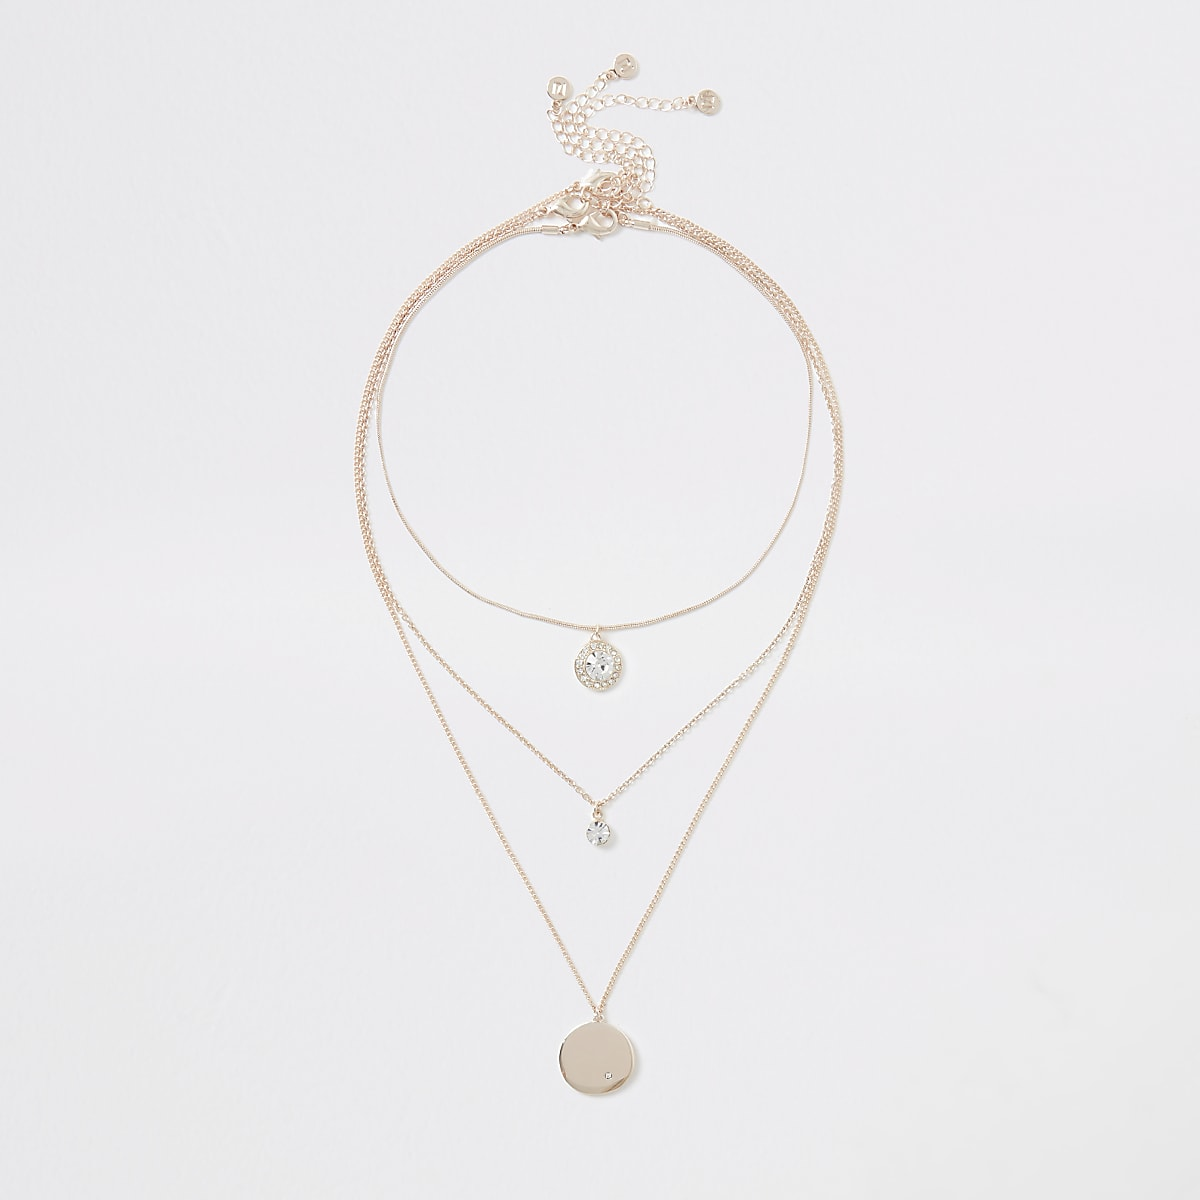 Rose gold color crystal layered necklace